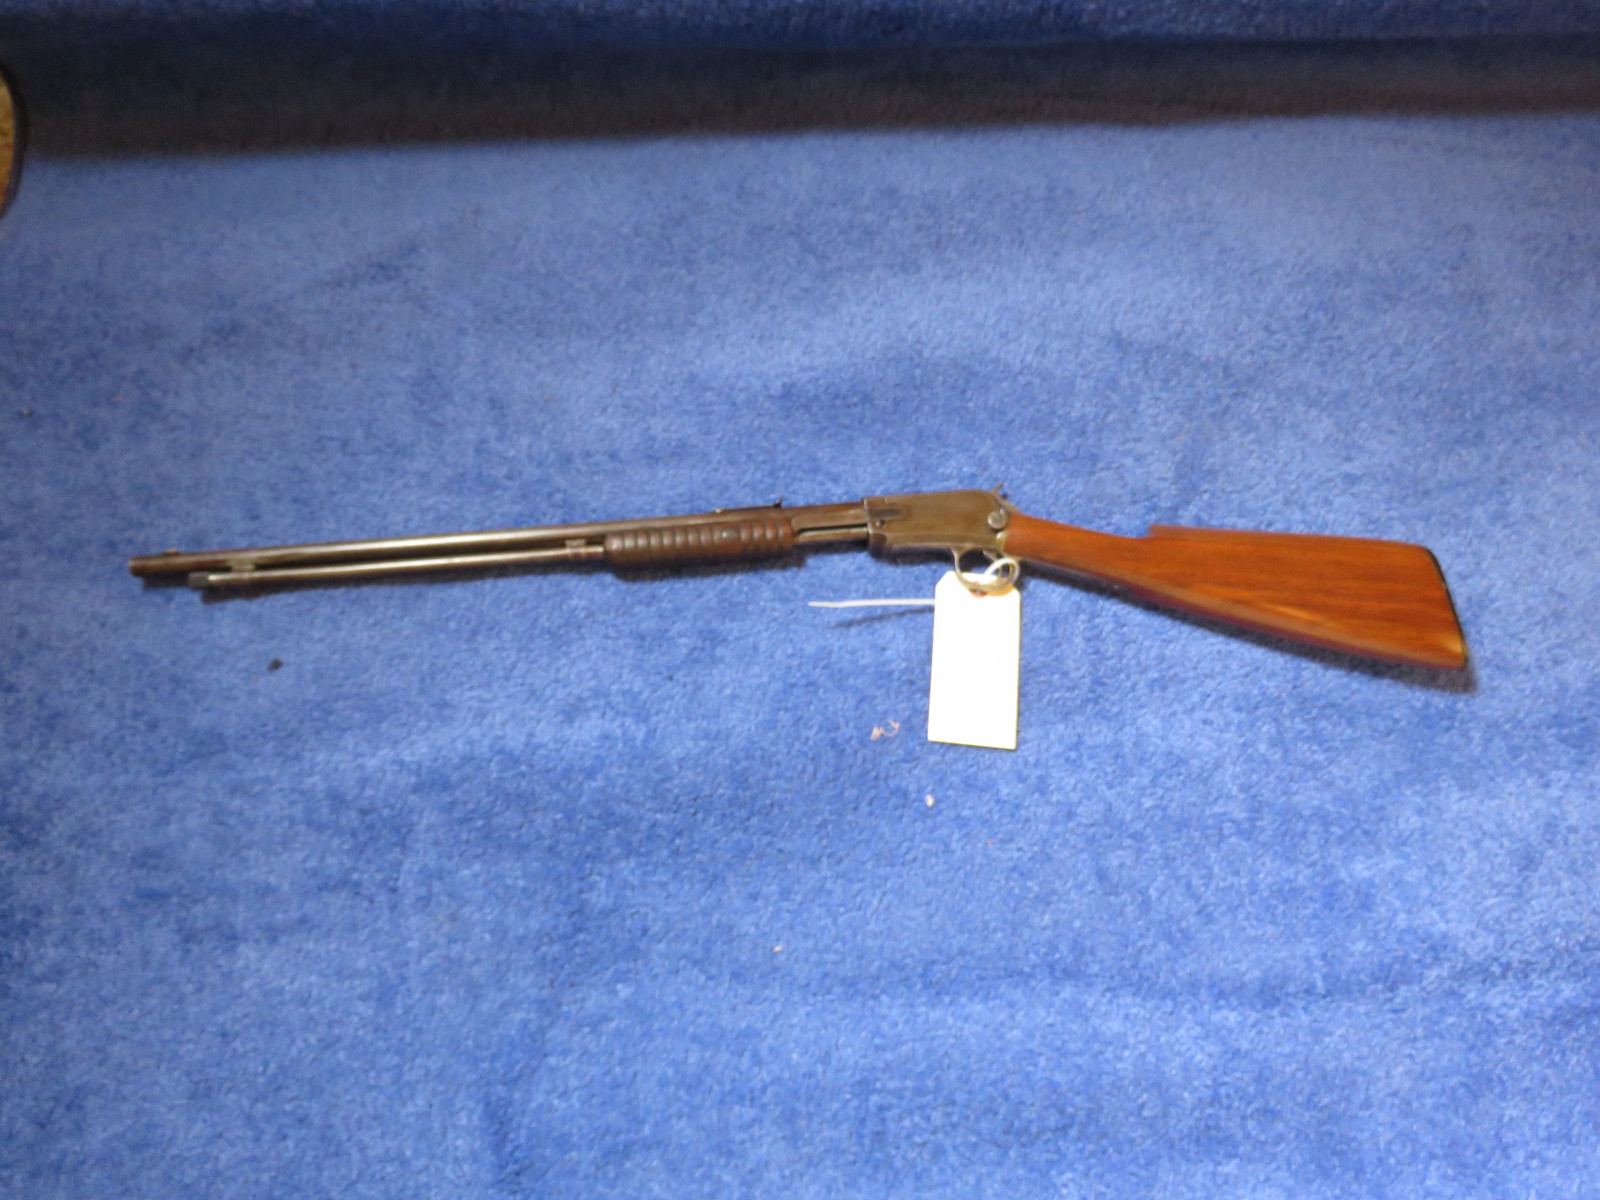 Winchester Repeating Arms Model 1906 Rifle - Image 2